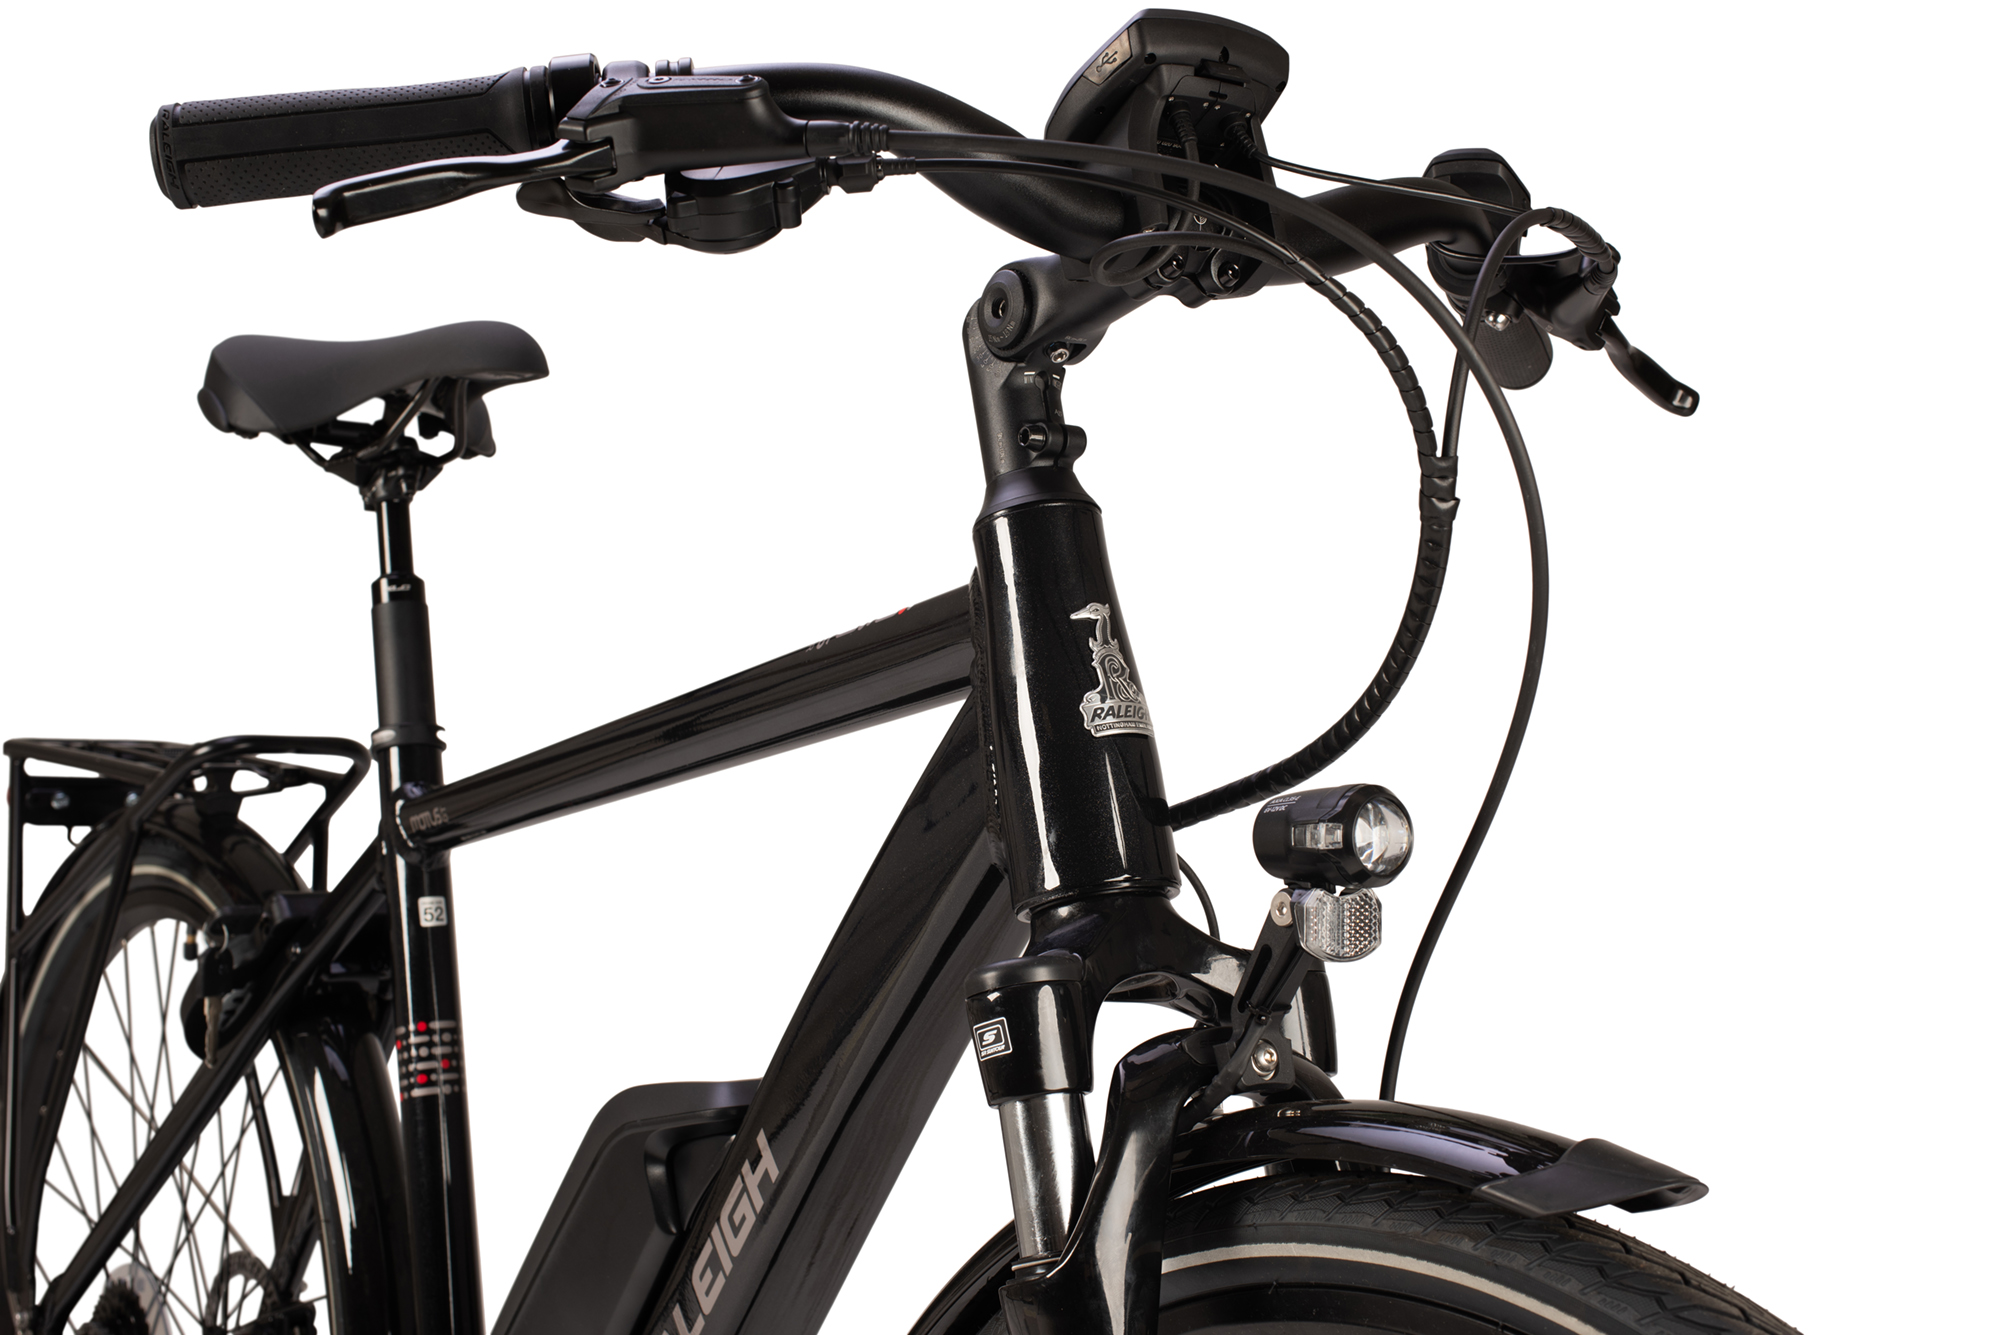 Front suspension forks and handlebars on the Raleigh Motus Grand Tour electric bike